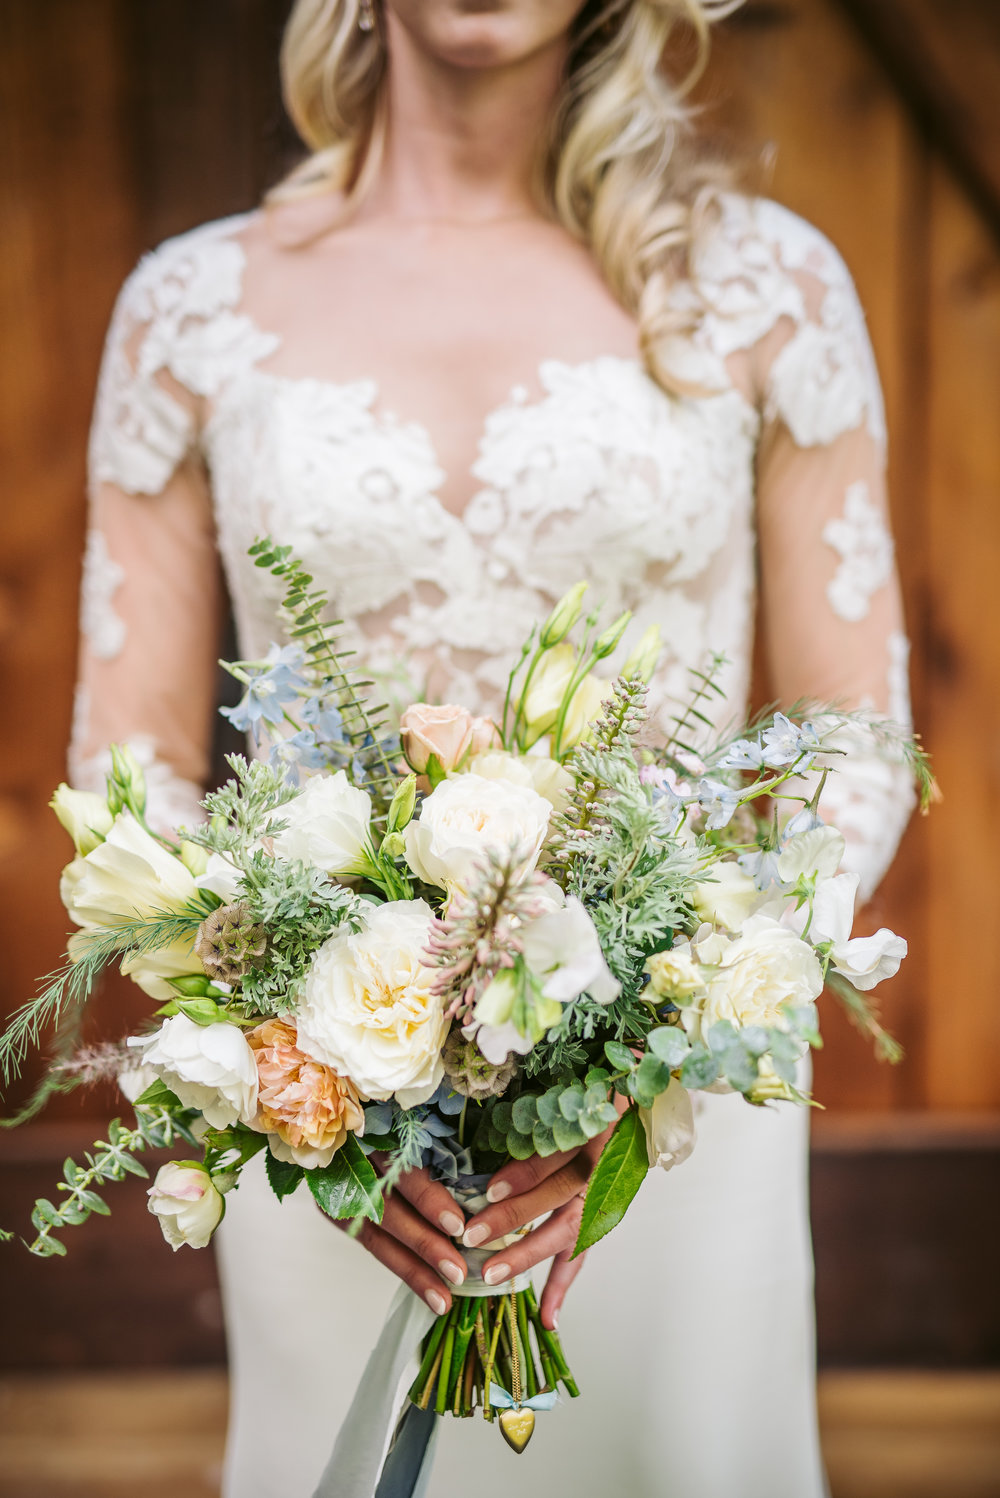 Anderson Ranch wedding in Kenwood, California with Venn Floral, Charleton Churchill, A Savvy Event, and Ramekins Culinary School.